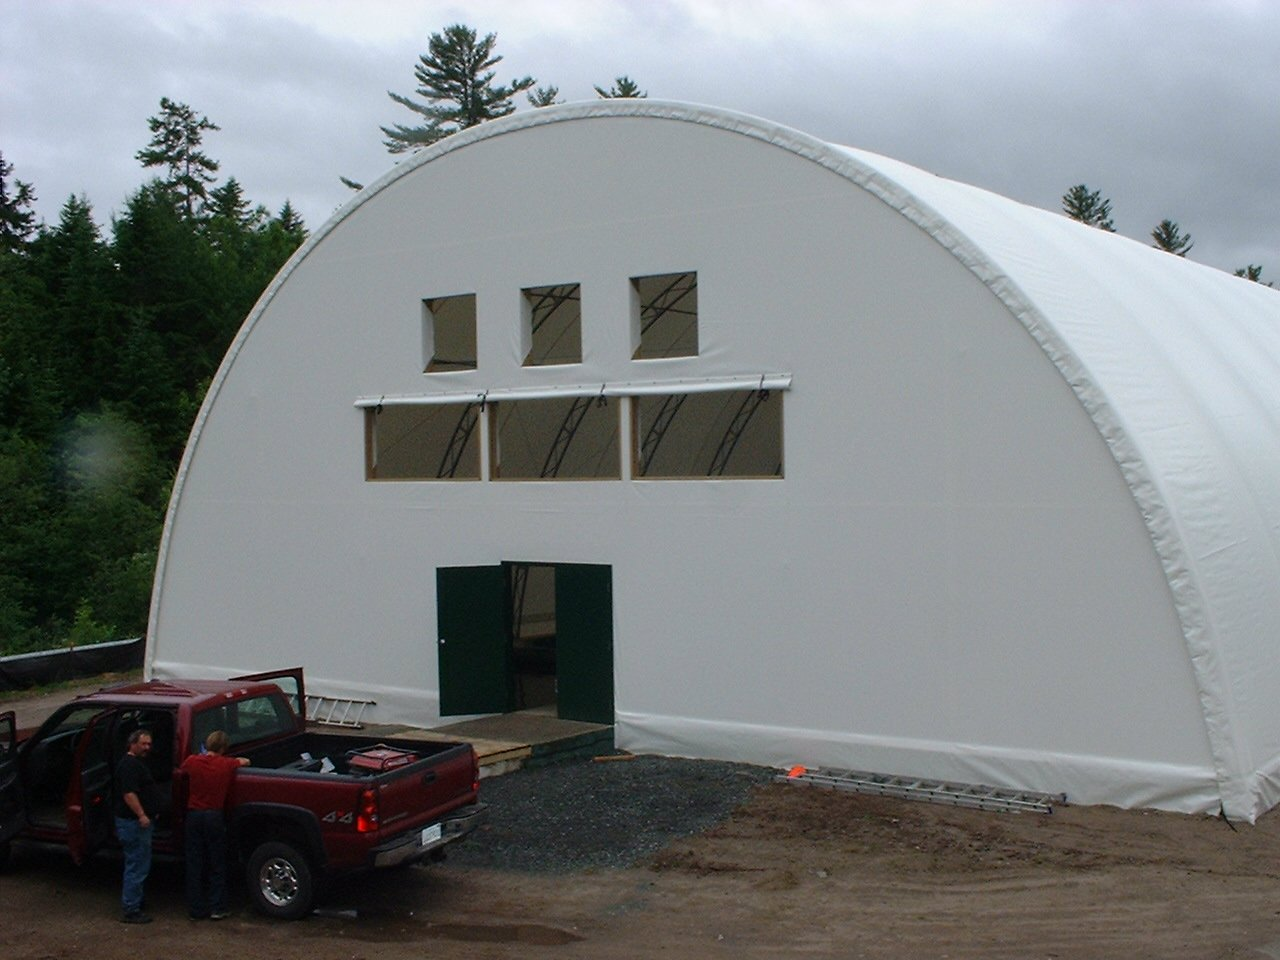 DOME BUILDINGS fabric buildings 55' x 150' covering salmon tanks